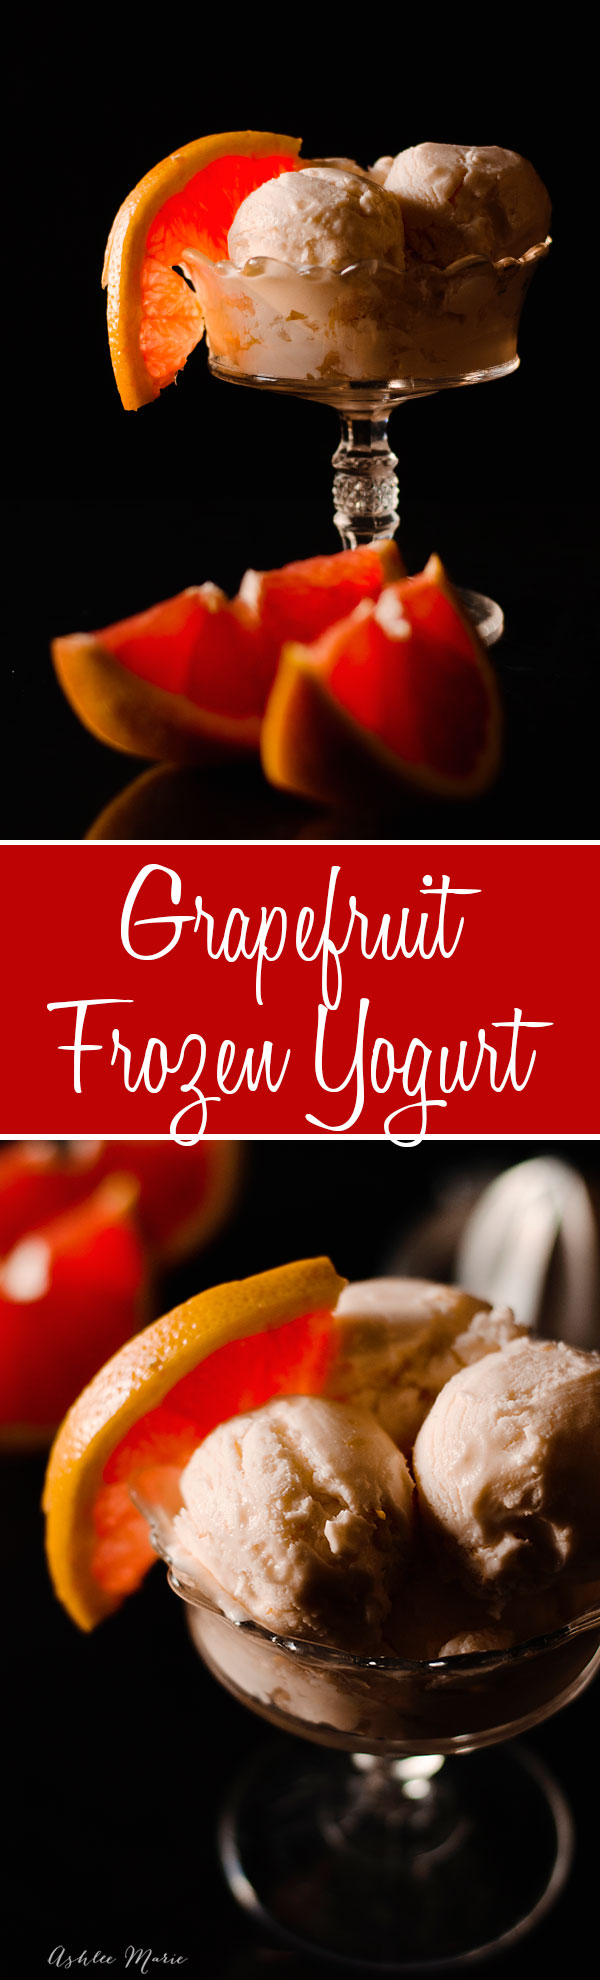 I love frozen yogurt and one of my favorites is this grapefruit frozen yogurt, it's sweet, tart and creamy, a wonderful recipe